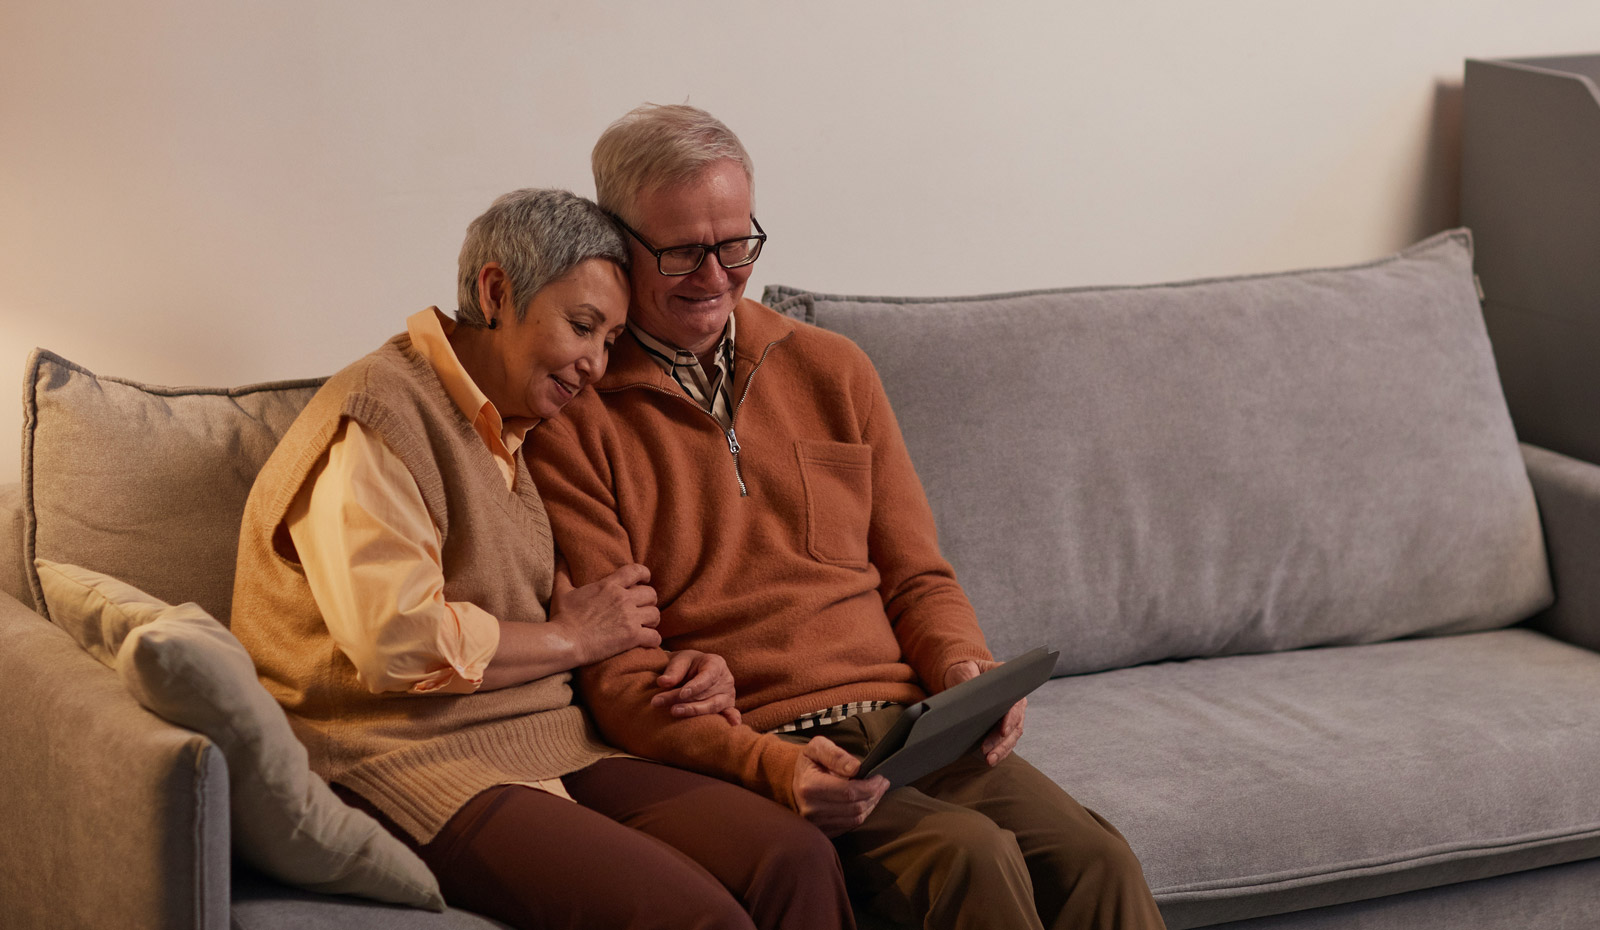 Elderly couple on couch using tablet computer